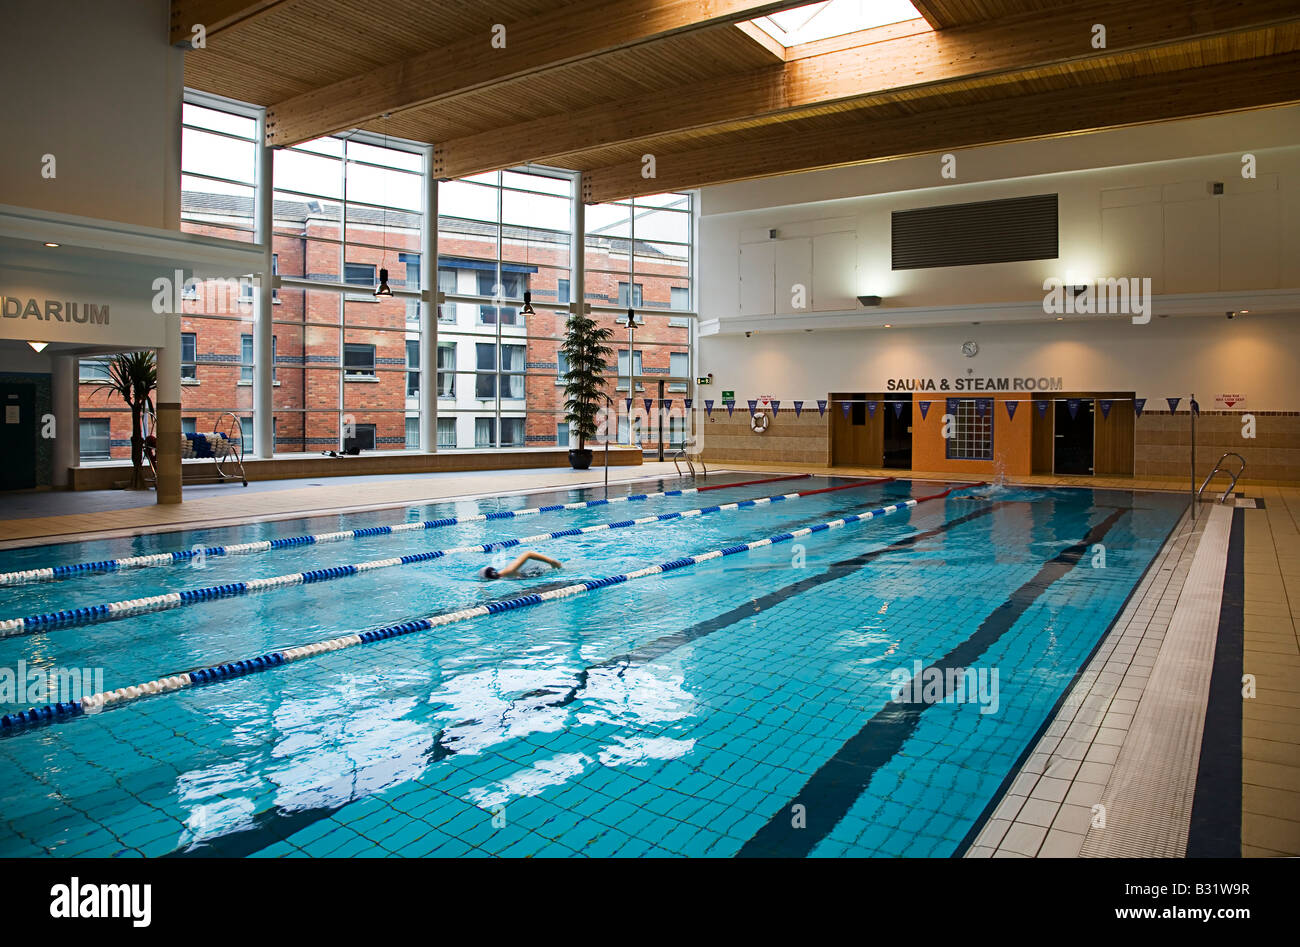 Dcu swimming pool interior view stock photo royalty free image 19096163 alamy Swimming pools in dublin city centre